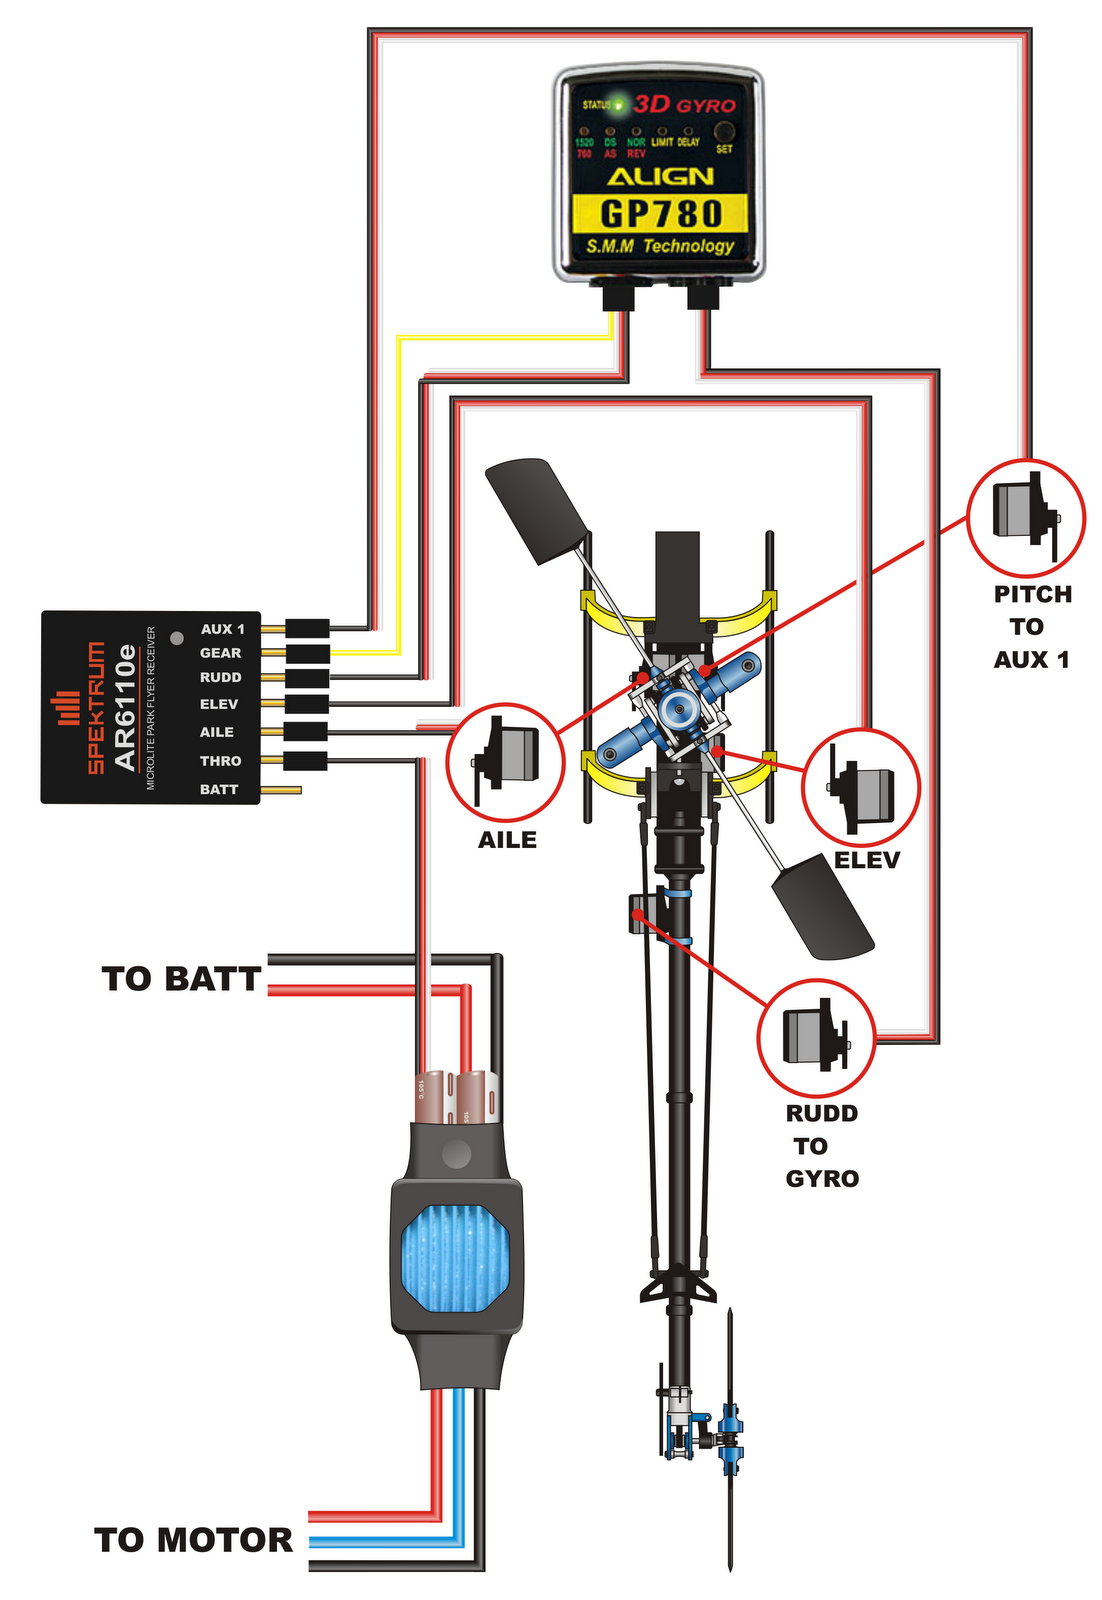 heli addict trex 450 sport wiringthe above diagram shows the typical wiring for a trex 450 [ 1102 x 1600 Pixel ]